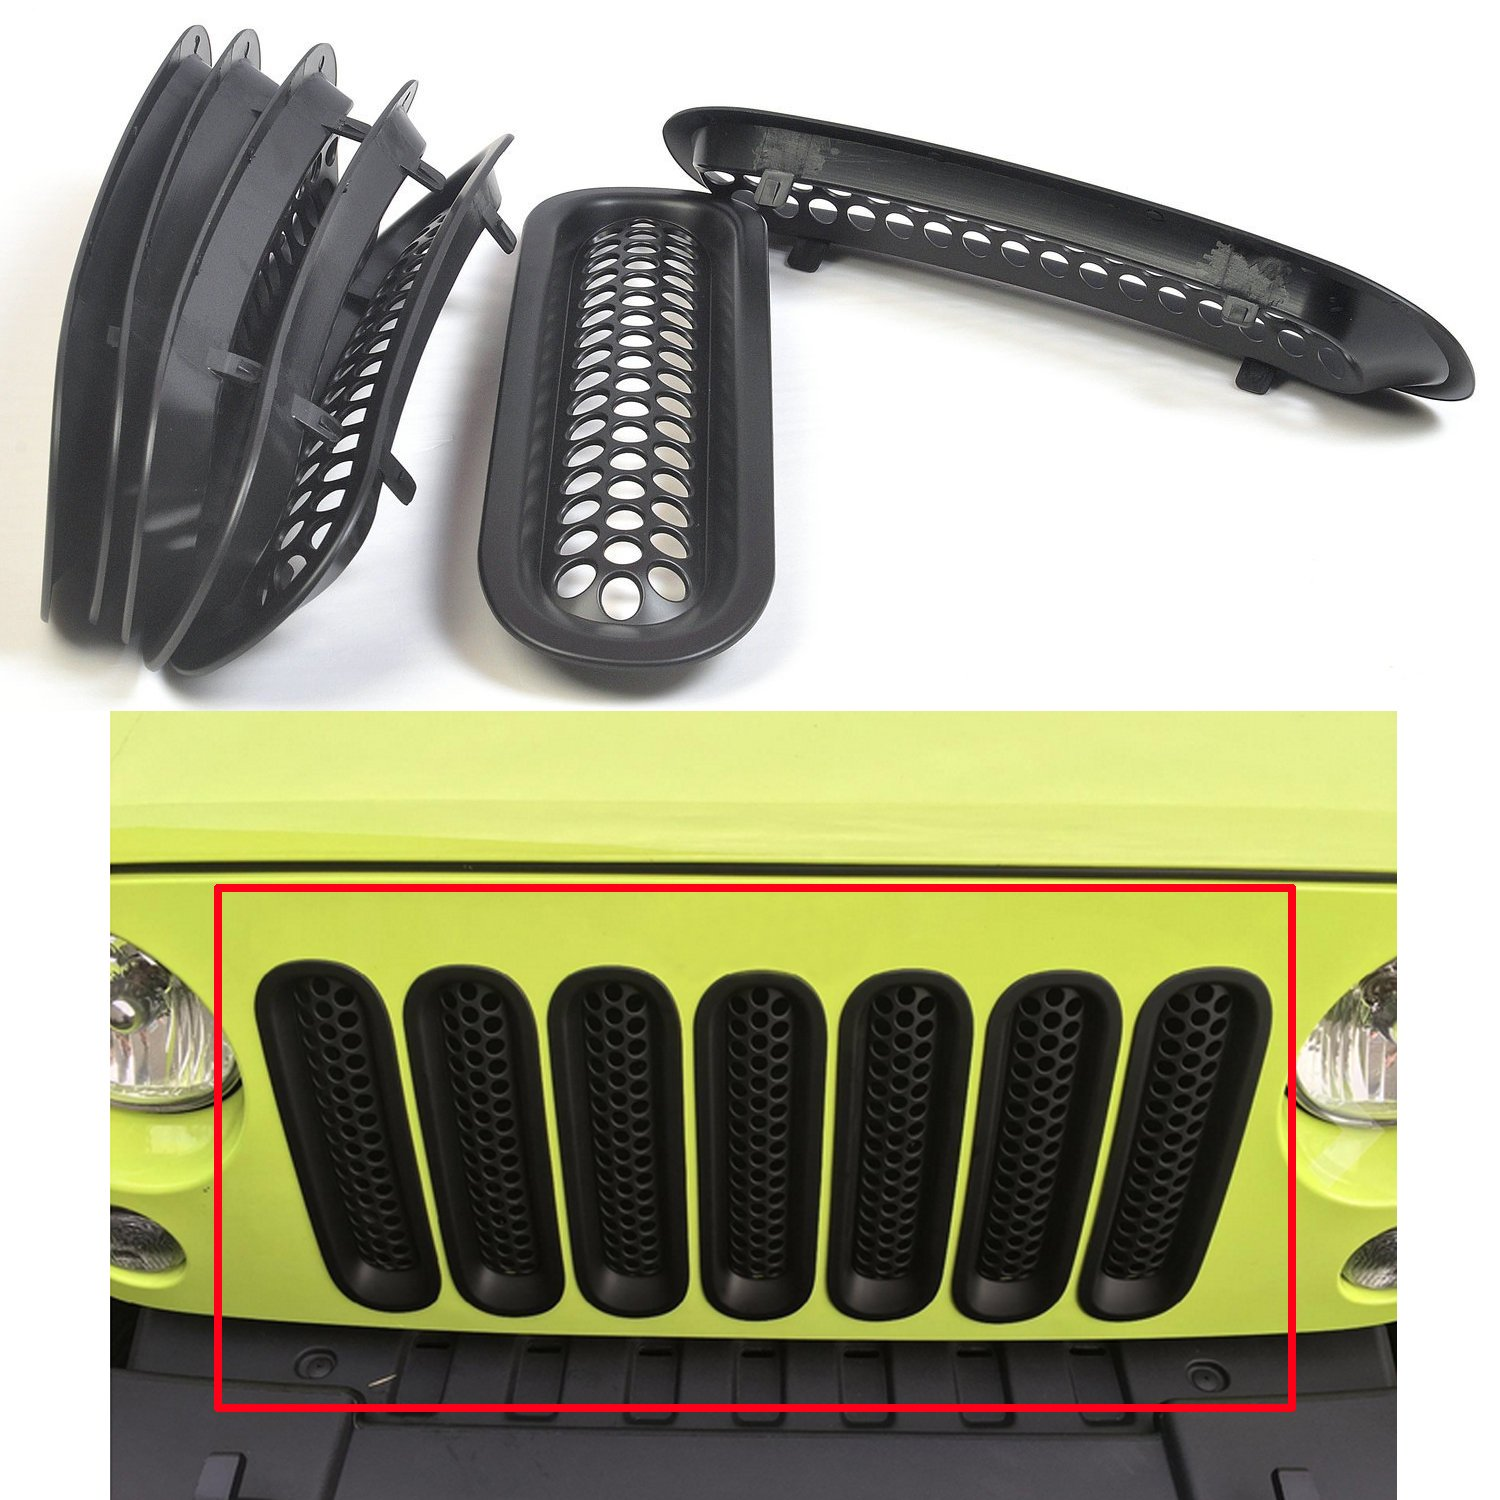 MOEBULB Upgrade Clip in Version Mesh Front Grill Insert Grille Cover Trim for 2007-2015 Jeep Wrangler JK 2-Door & 4-Door (with Key Hole, Matte Black) MOE-BULB